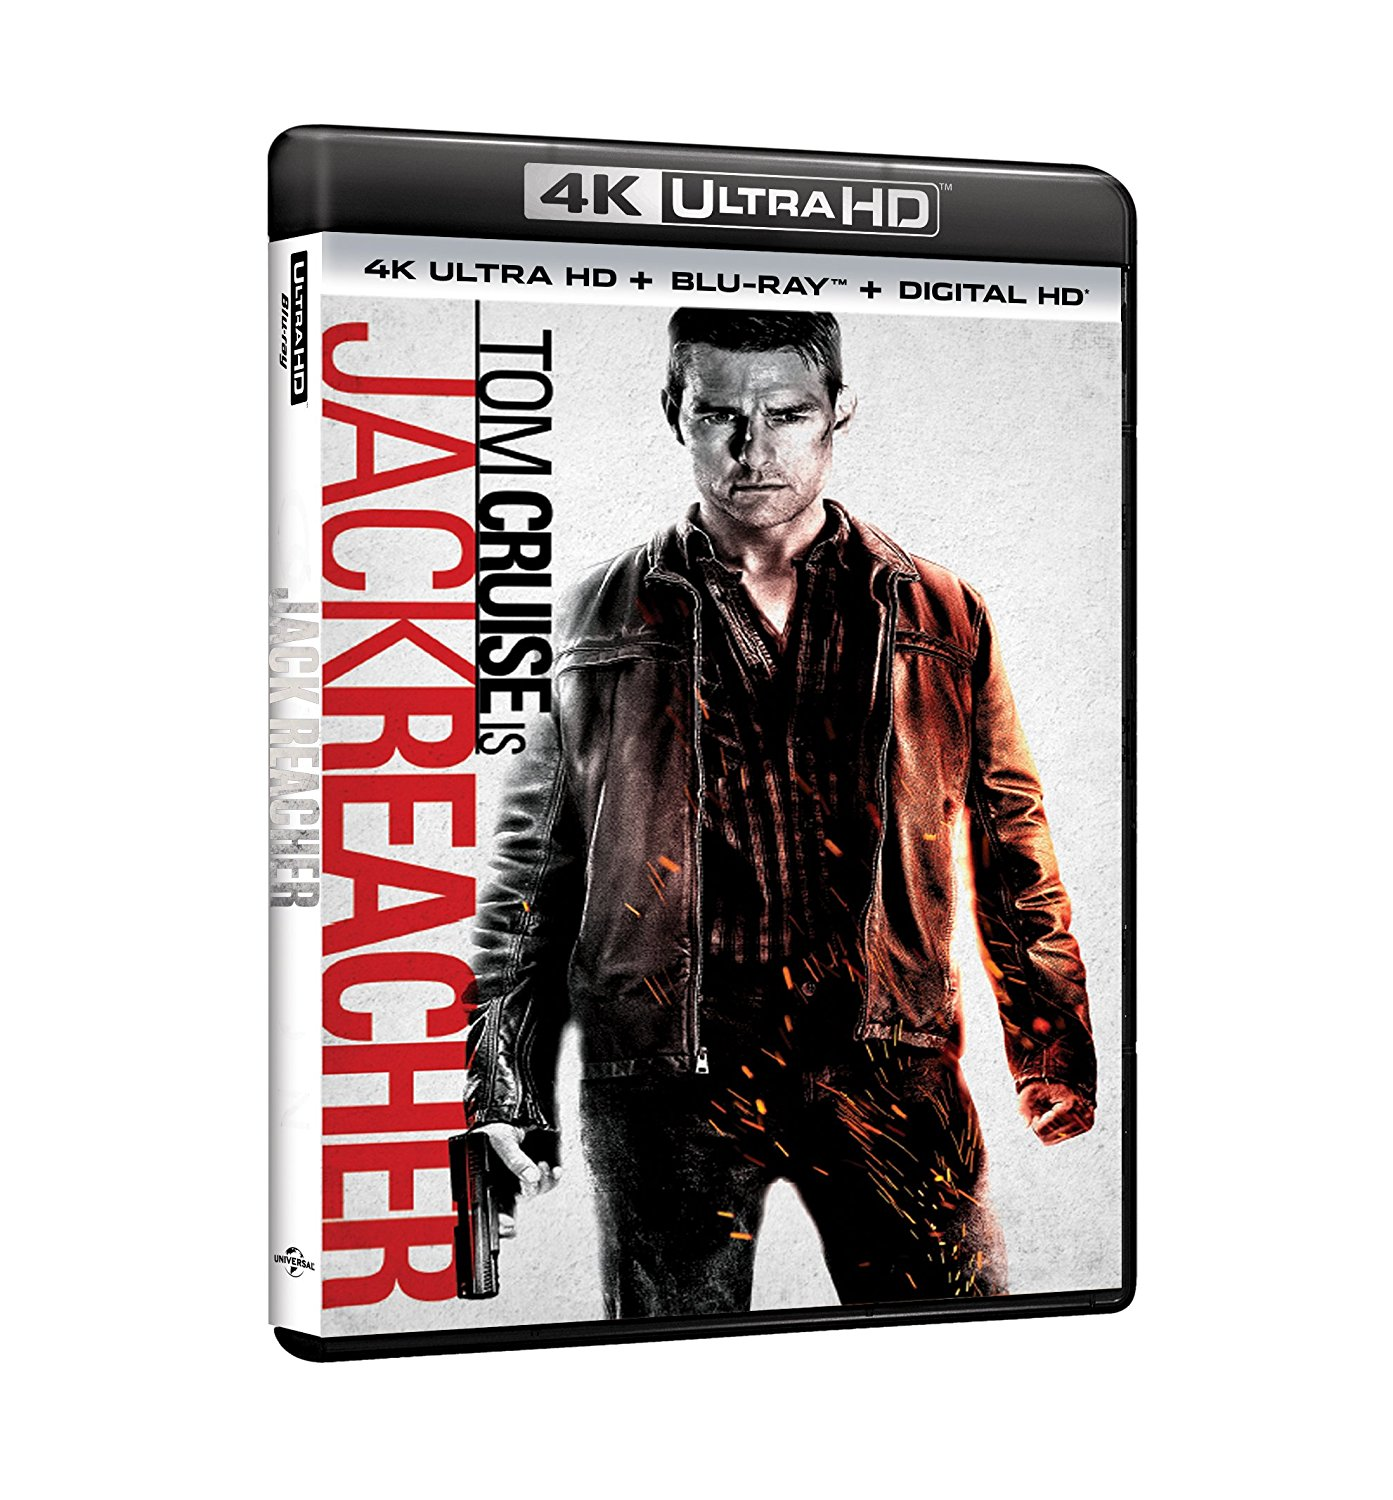 JACK REACHER - LA PROVA DECISIVA (4K UHD+BLU-RAY)